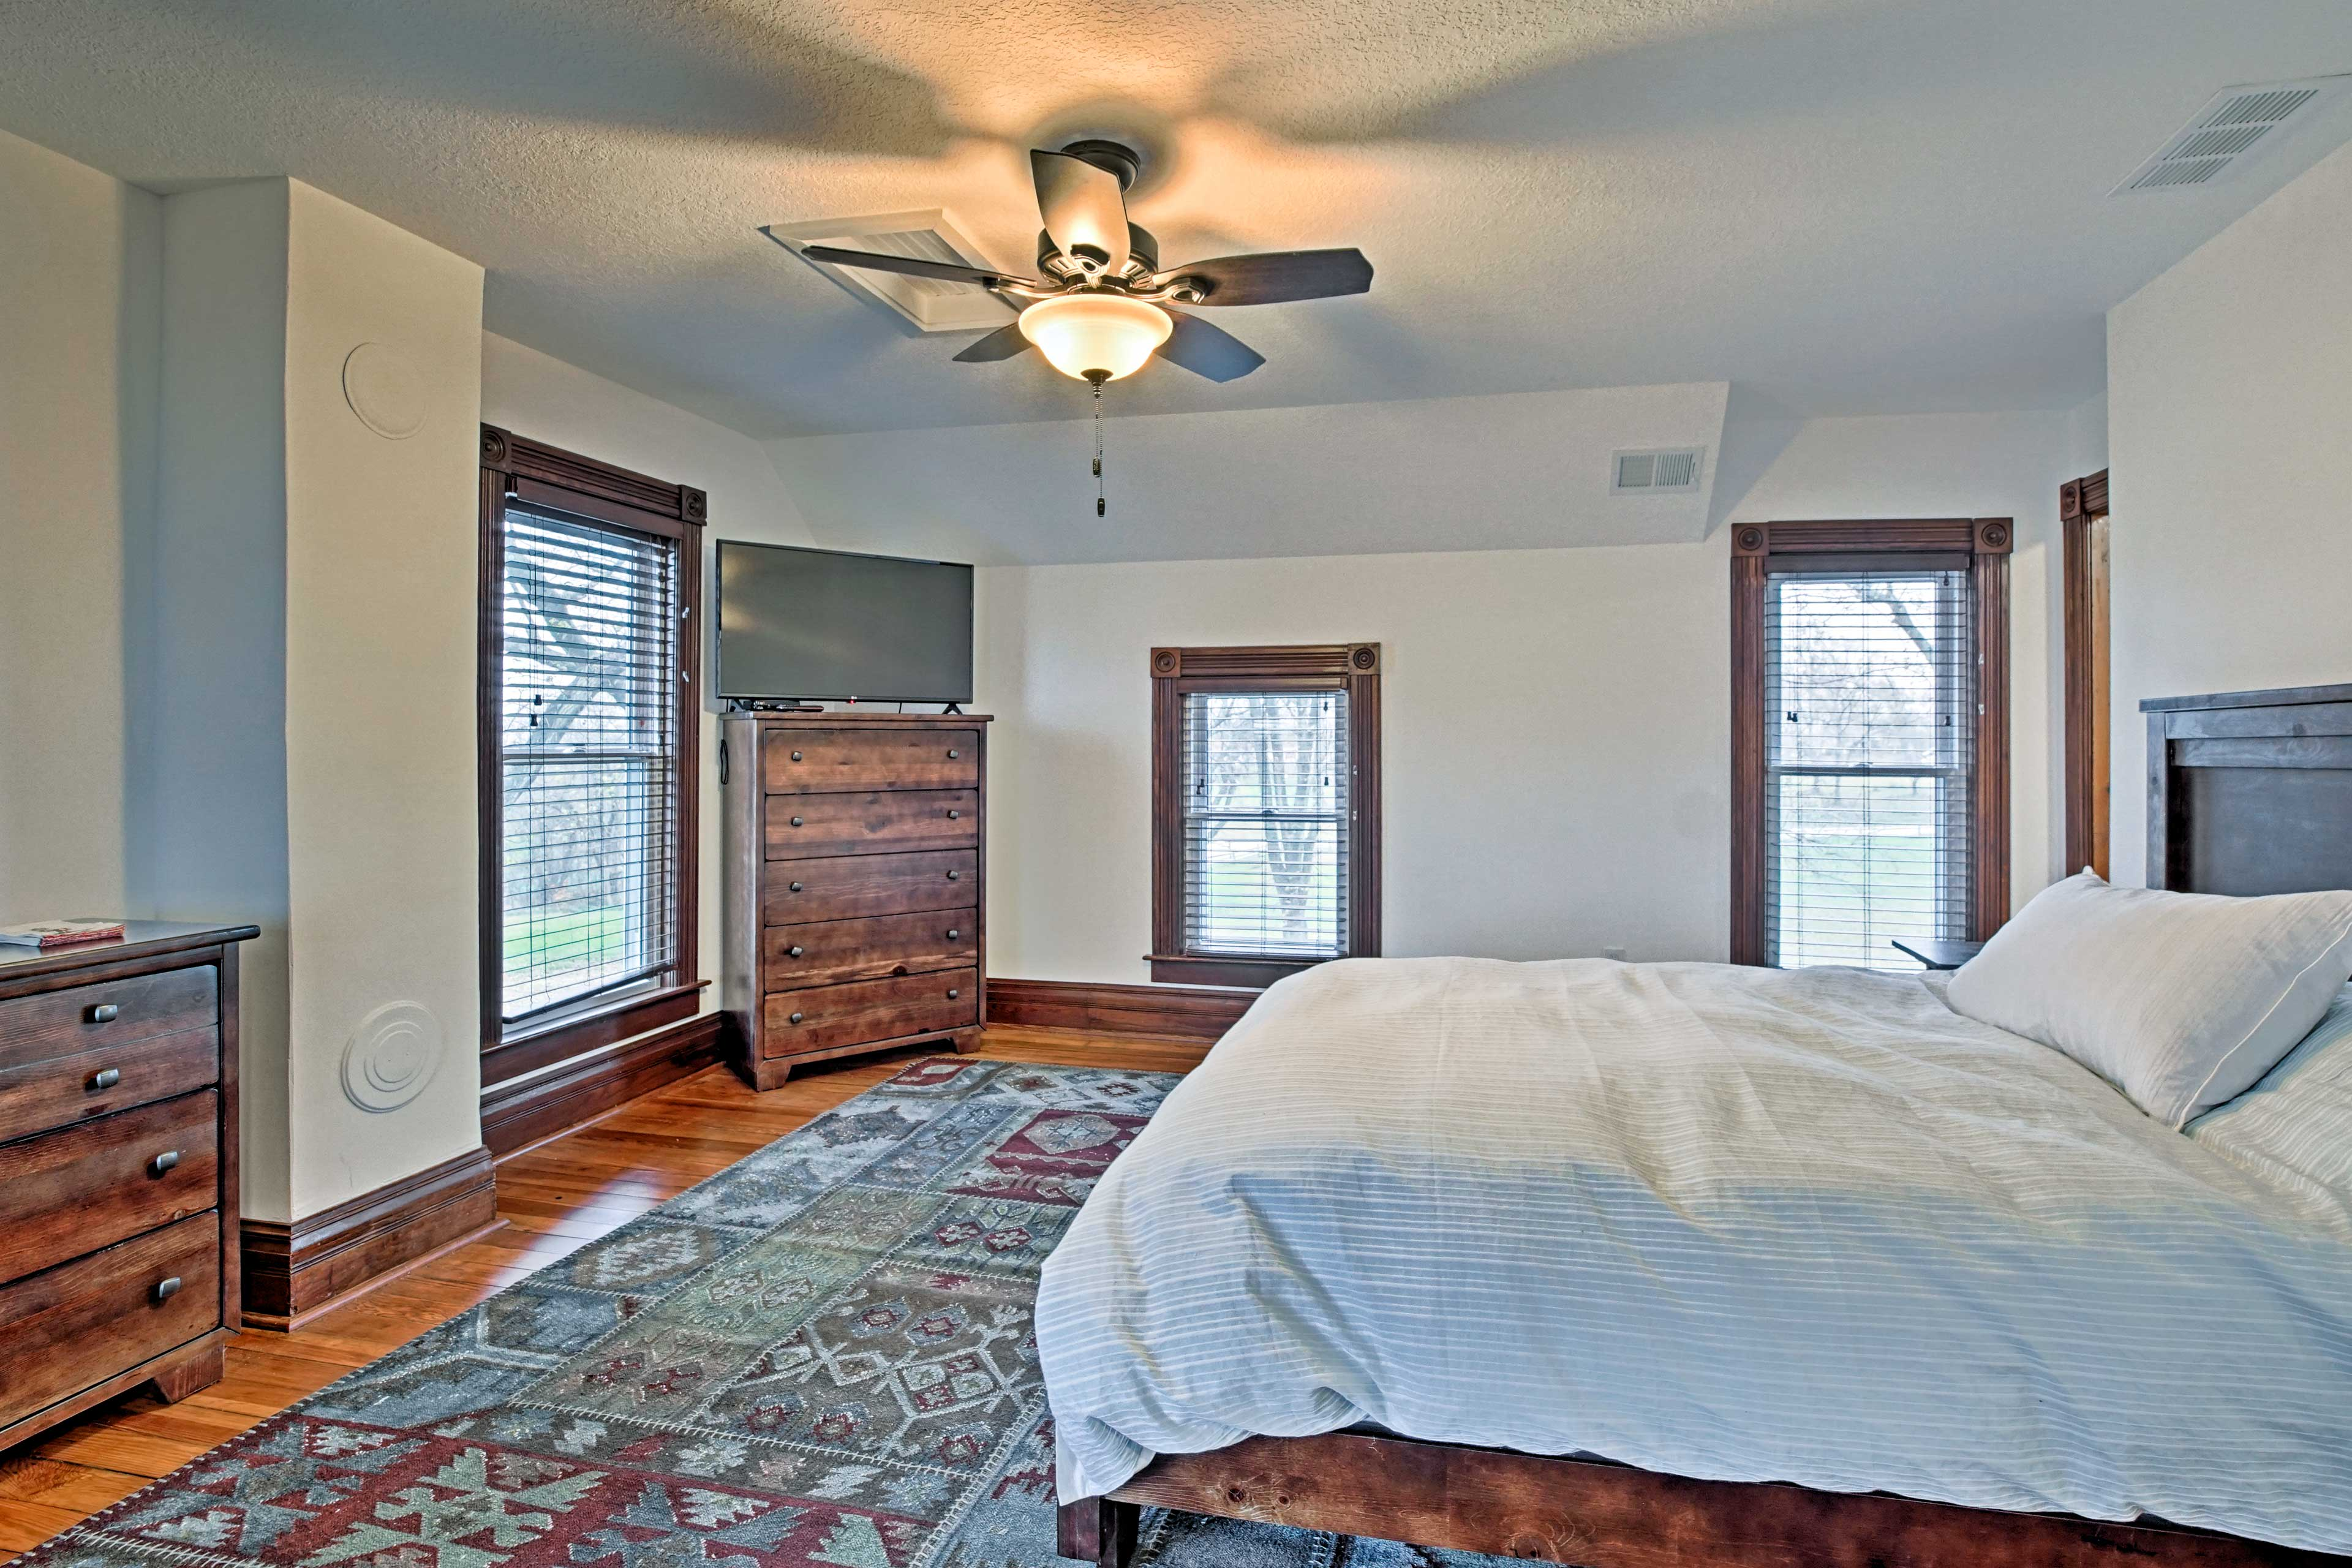 The master bedroom features a cozy queen bed and a flat-screen cable TV.